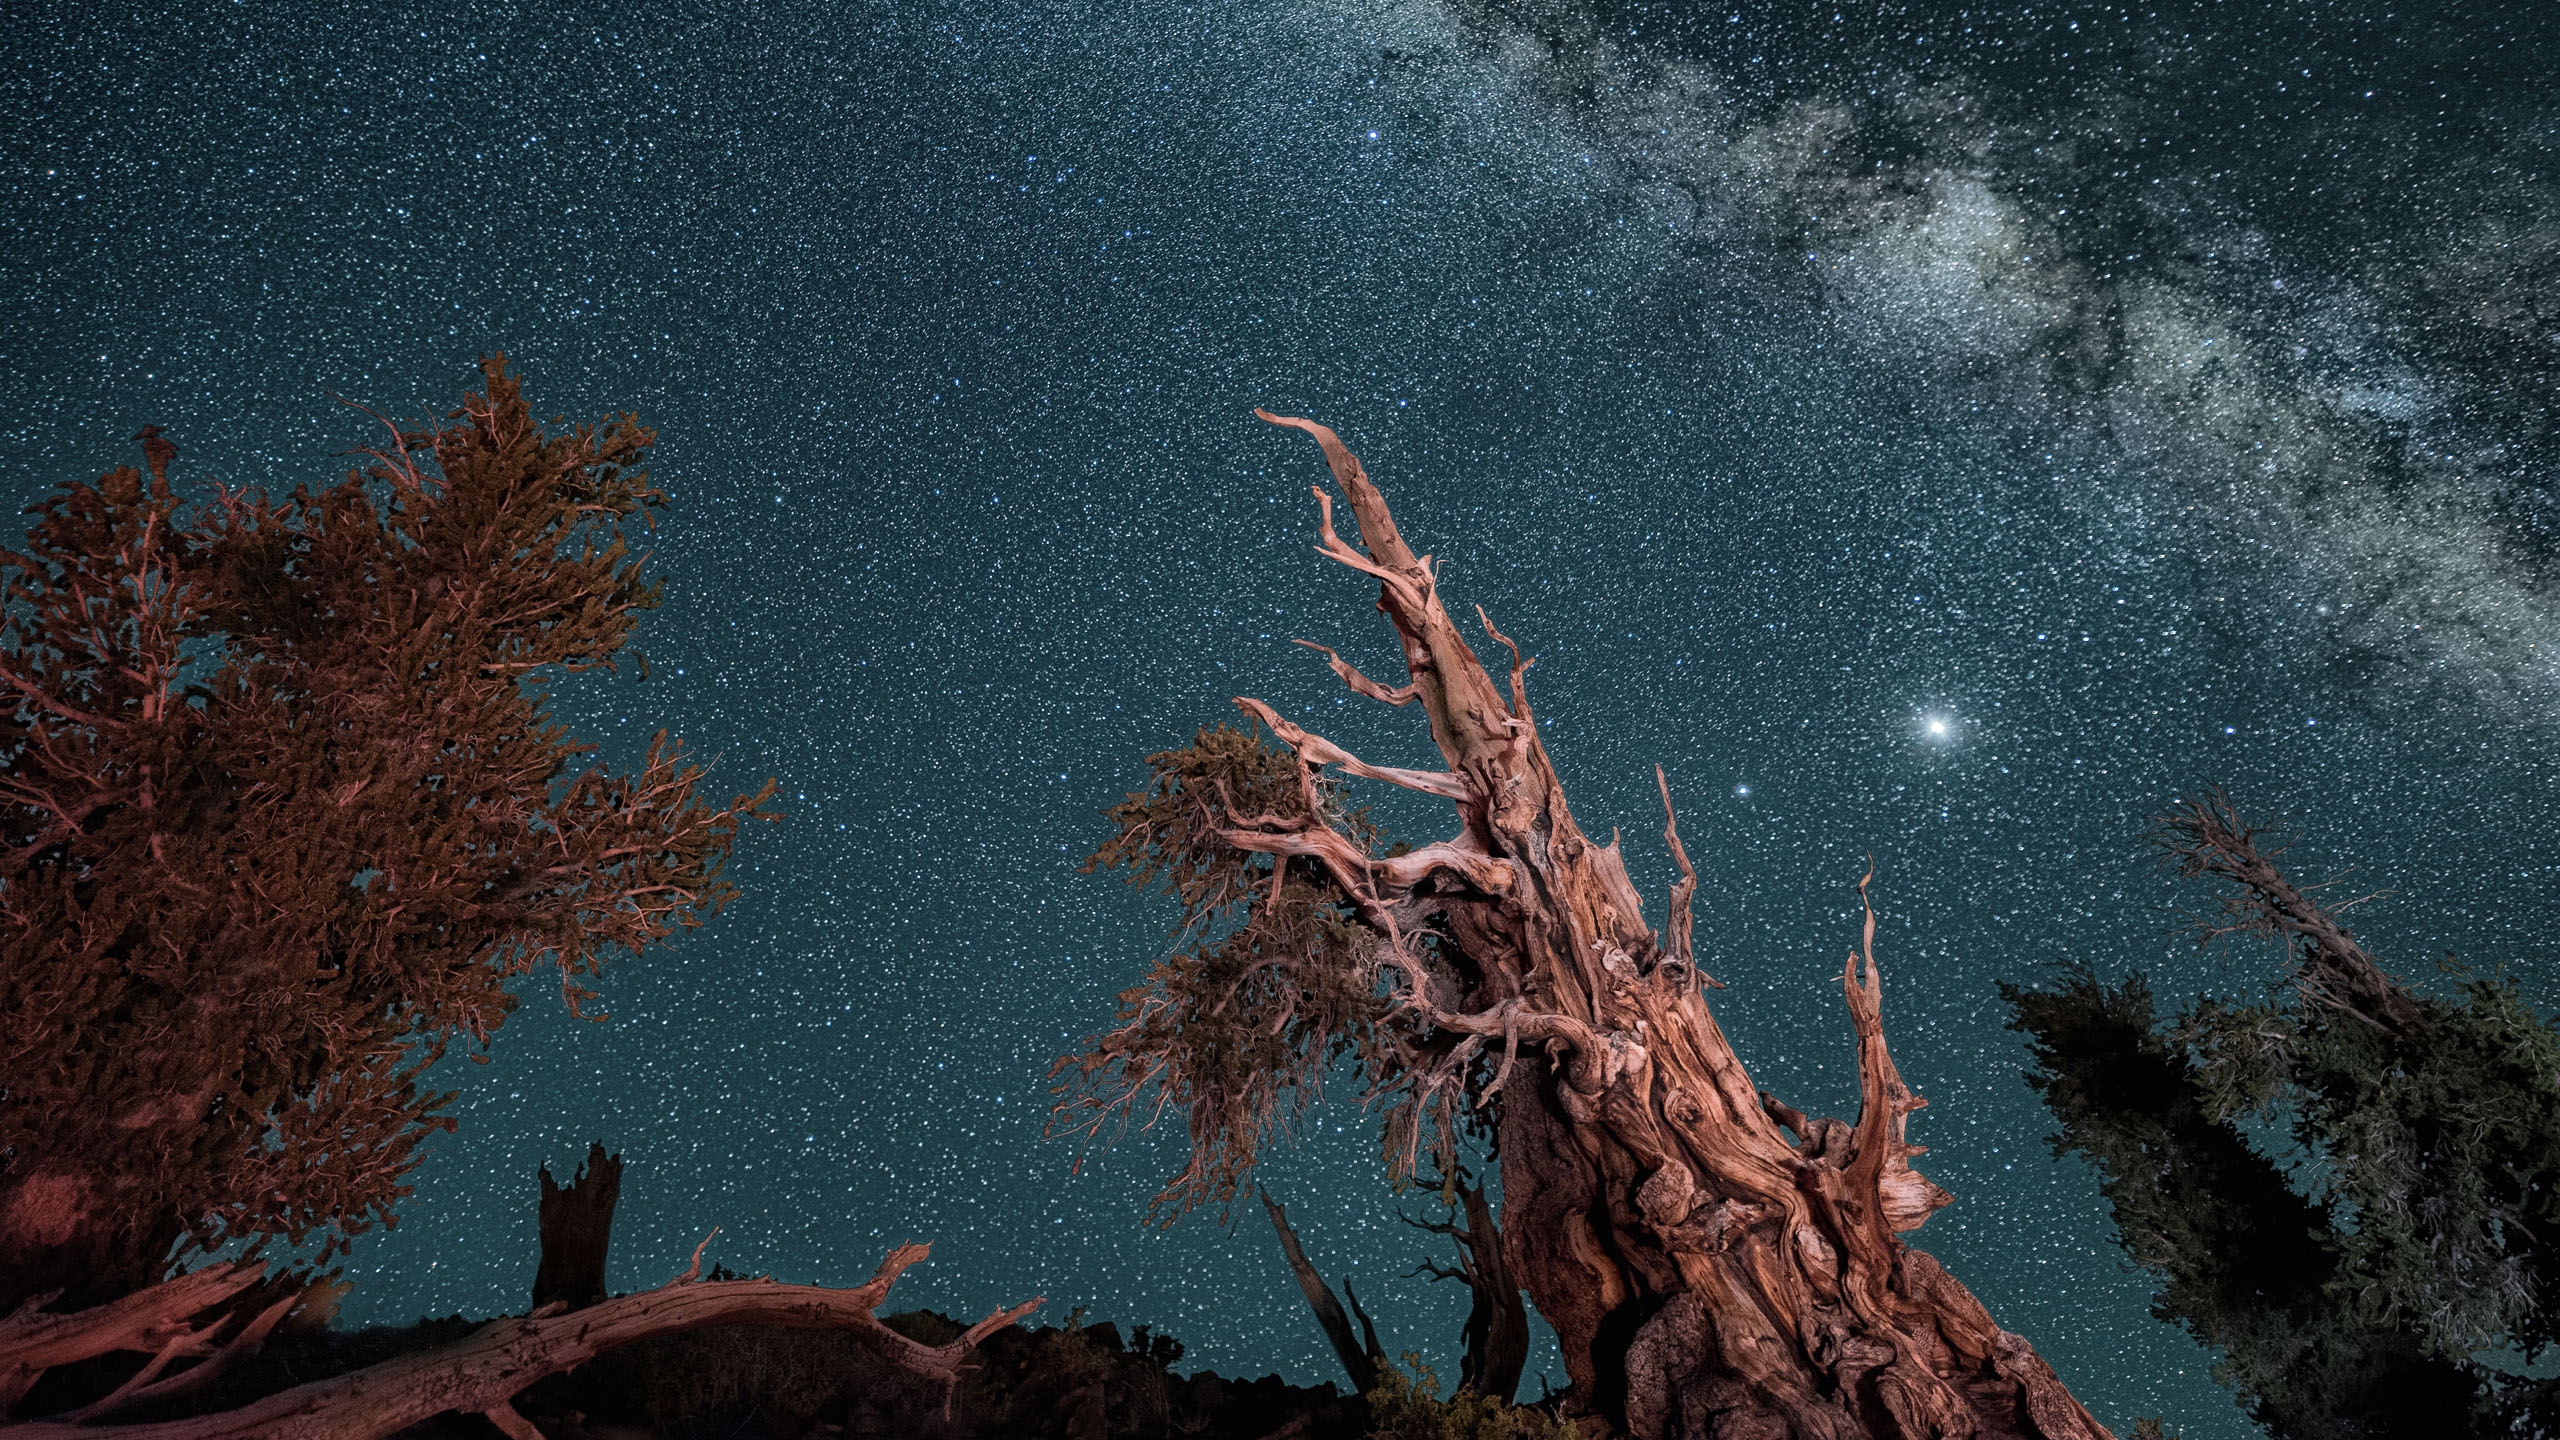 Made from 40 light frames by Starry Landscape Stacker 1.8.0.  Algorithm: Mean Min Hor Star Dupe